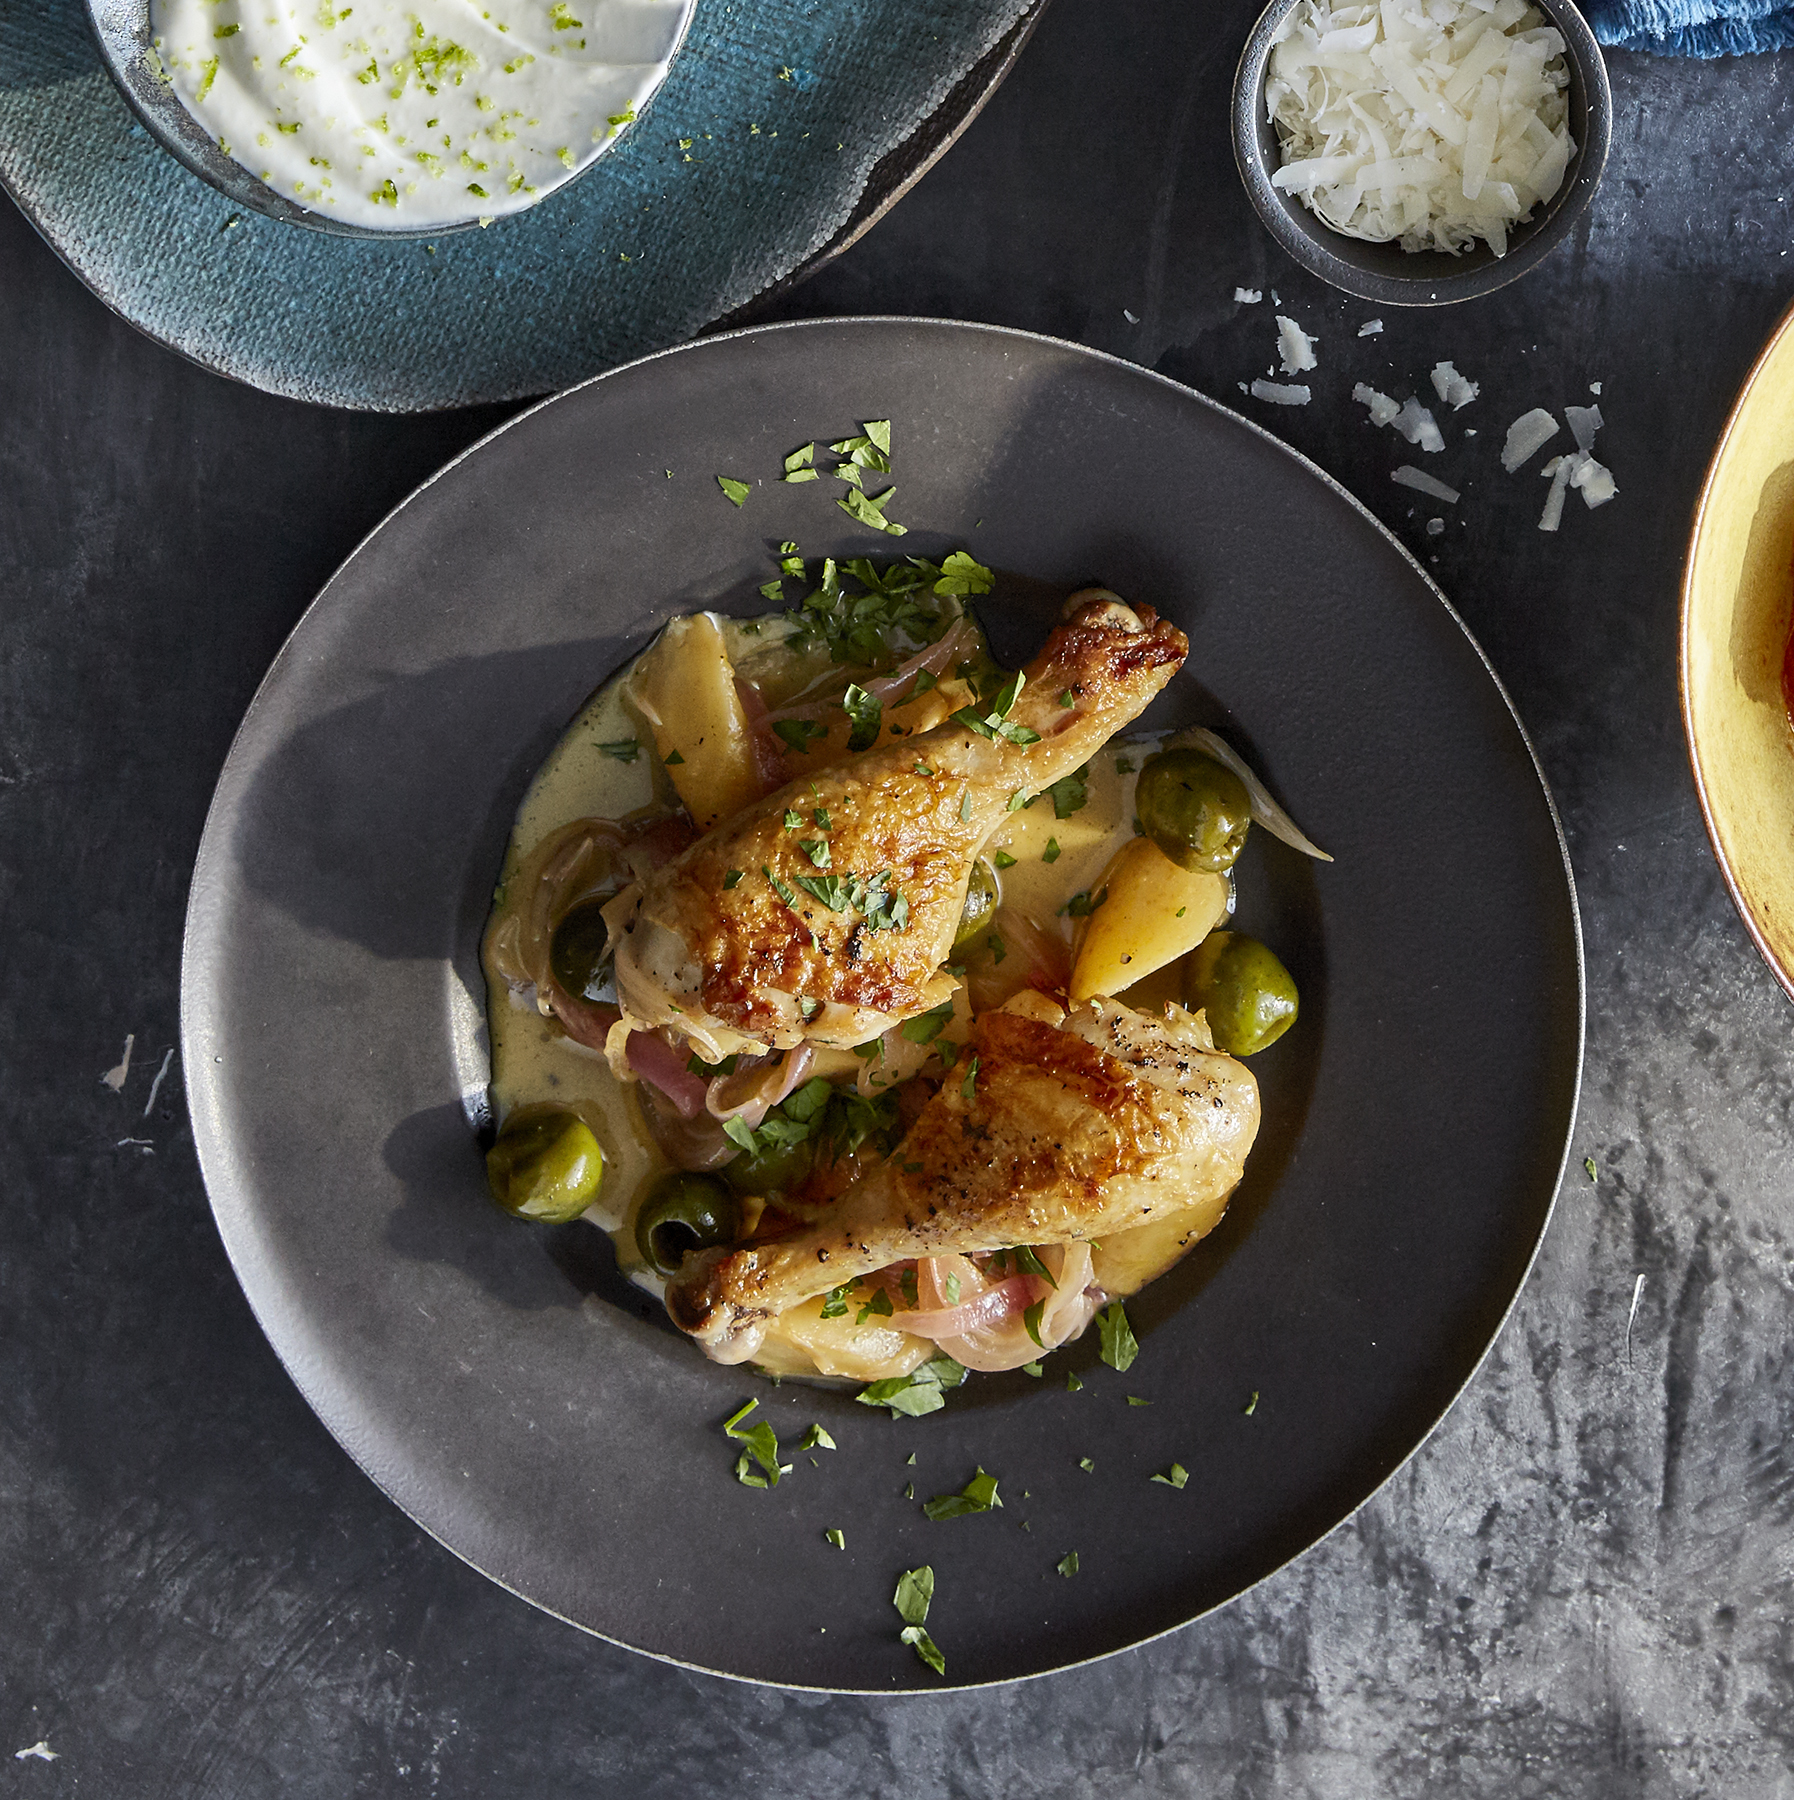 Citrus-Braised Drumsticks With Parsnips